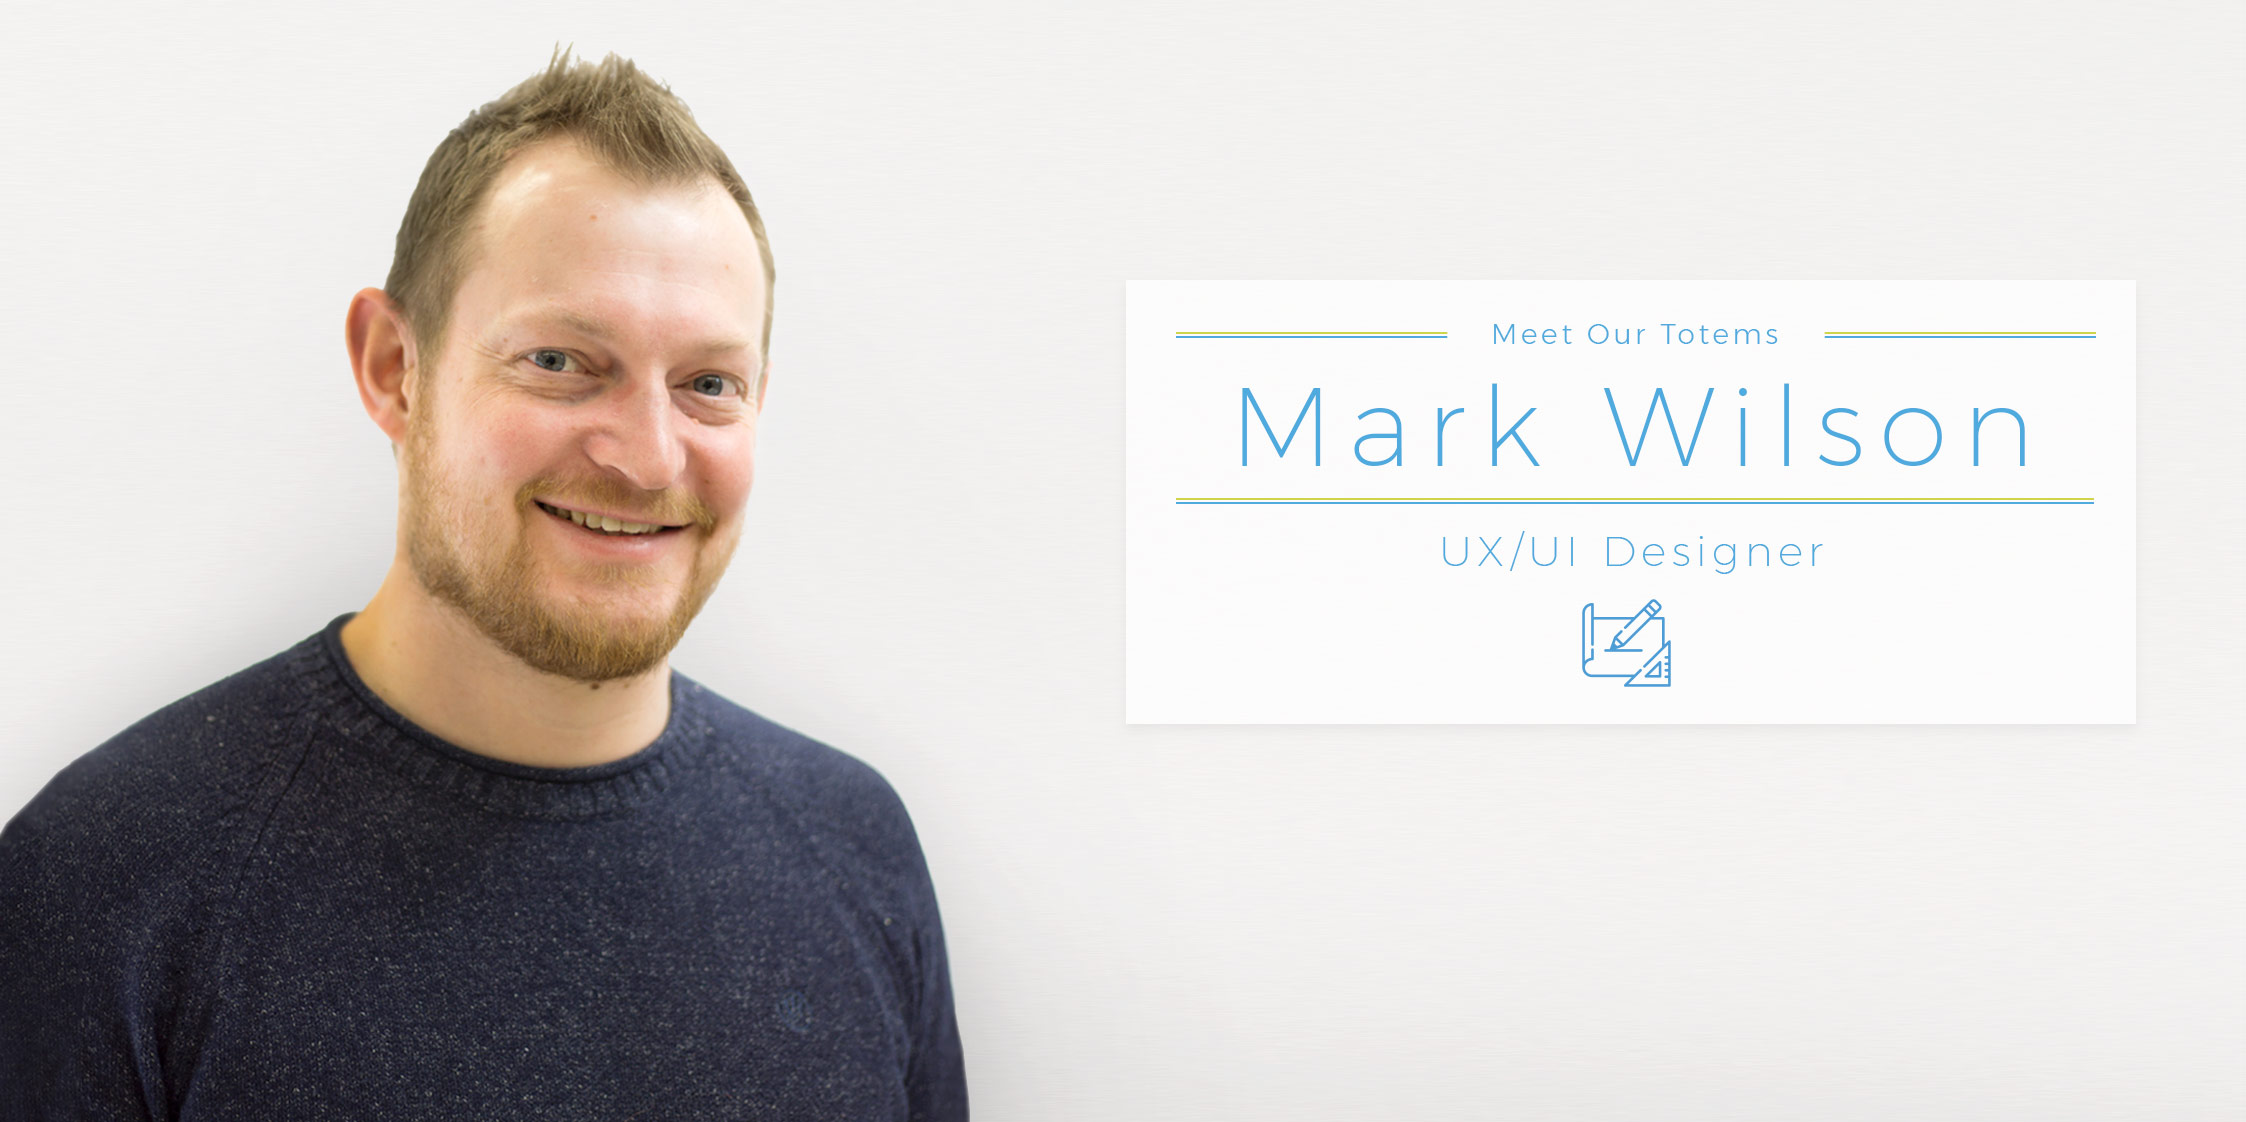 Meet Our Totems  –  Mark